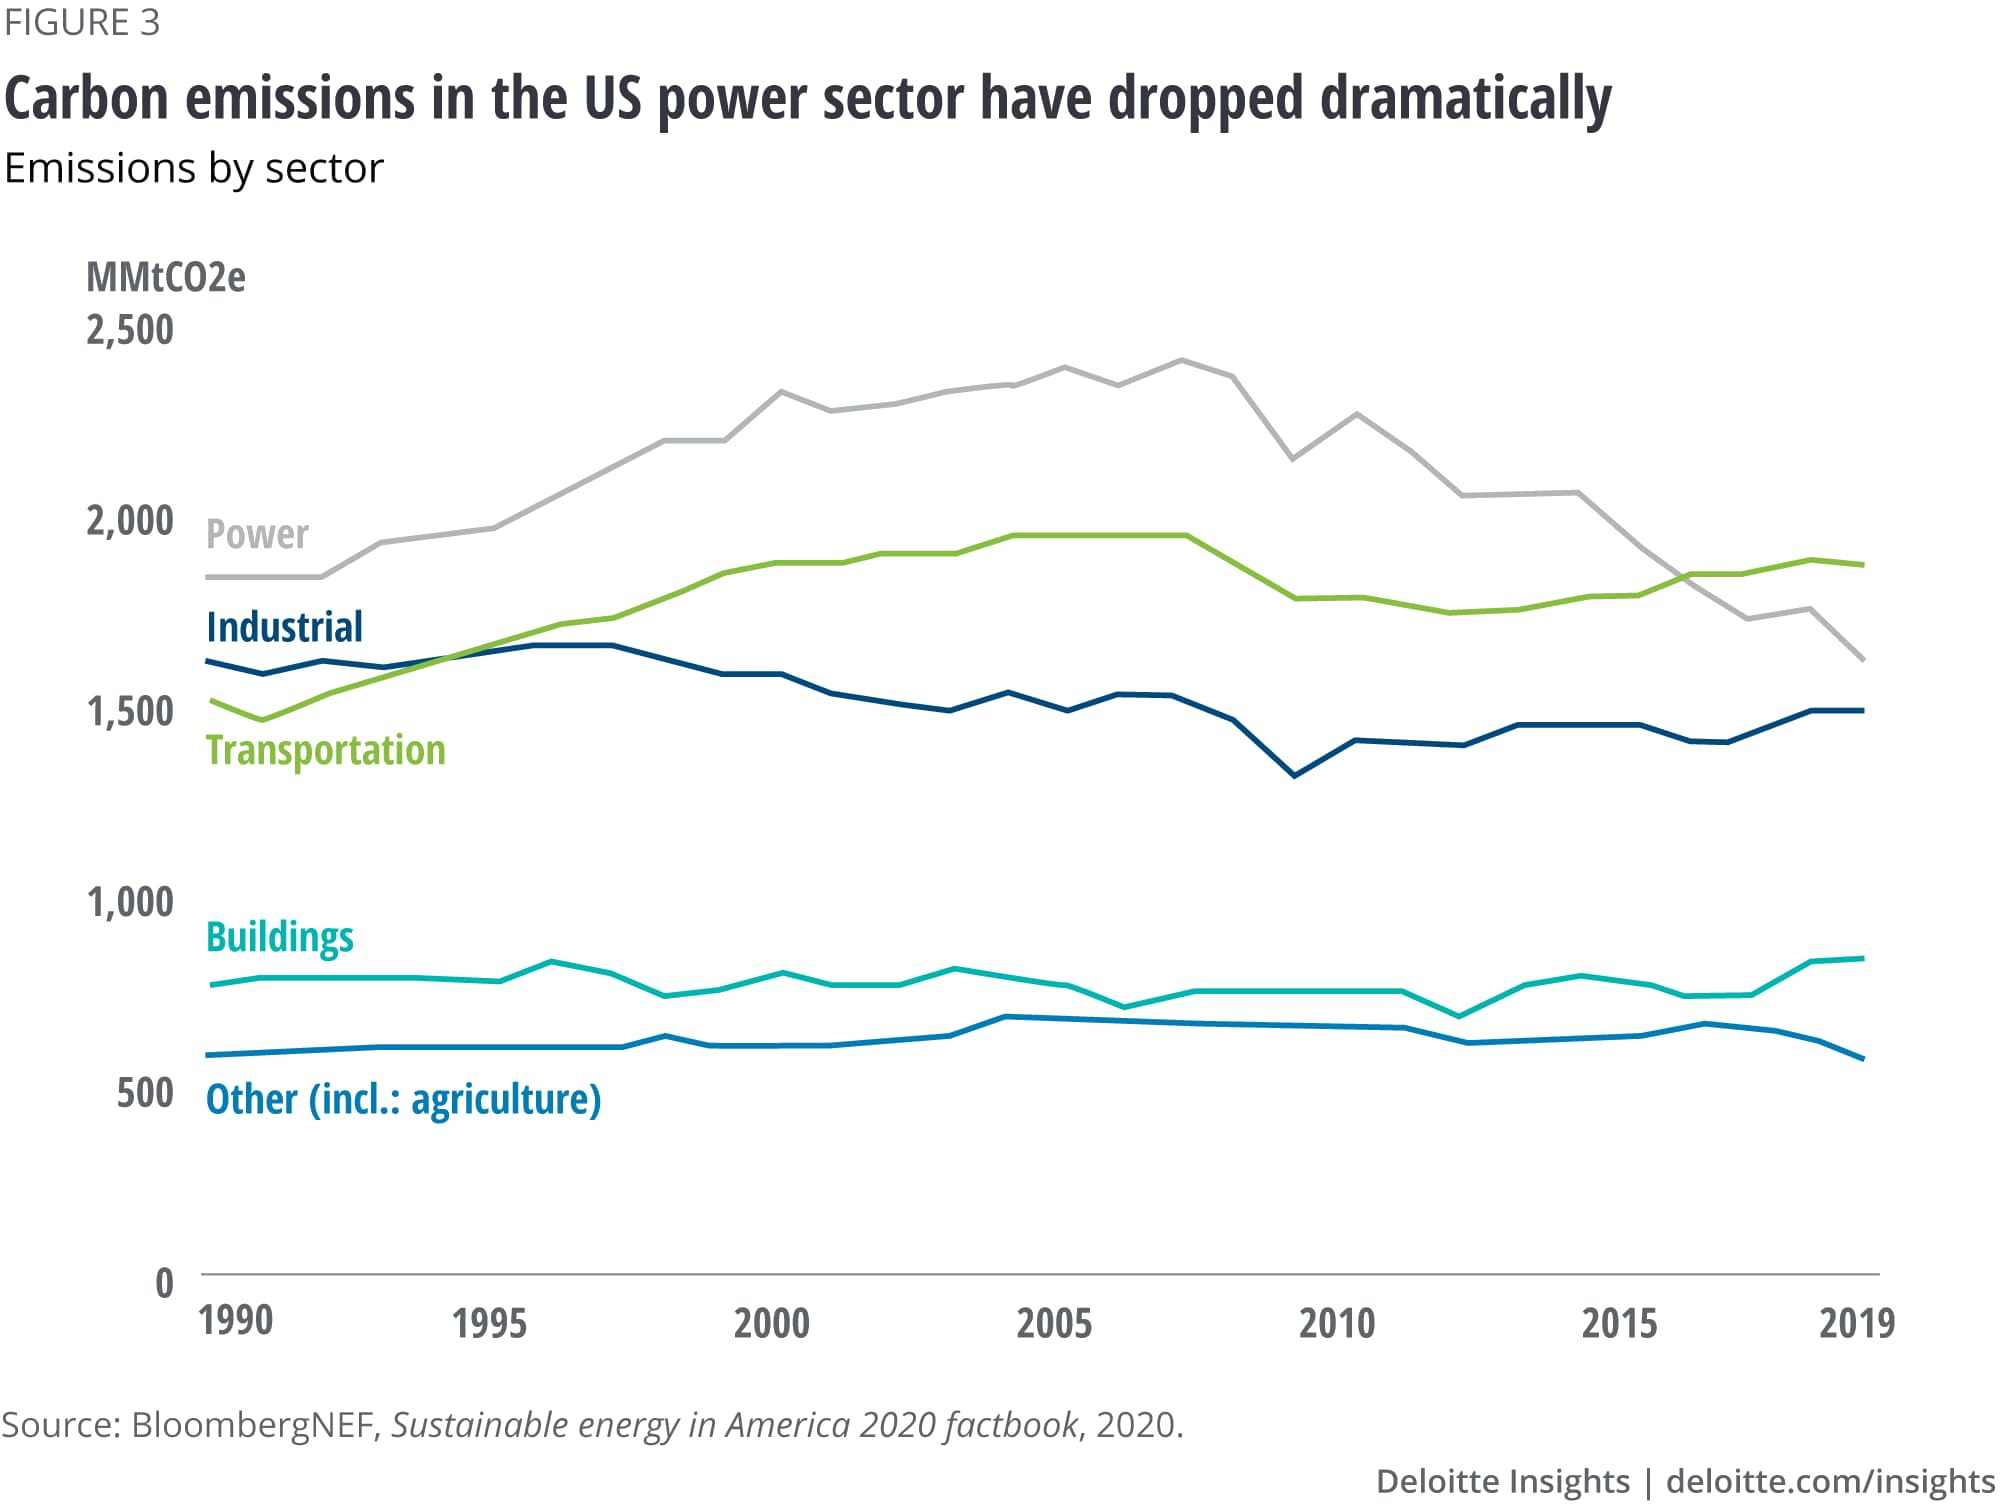 Carbon emissions in the US power sector have dropped dramatically